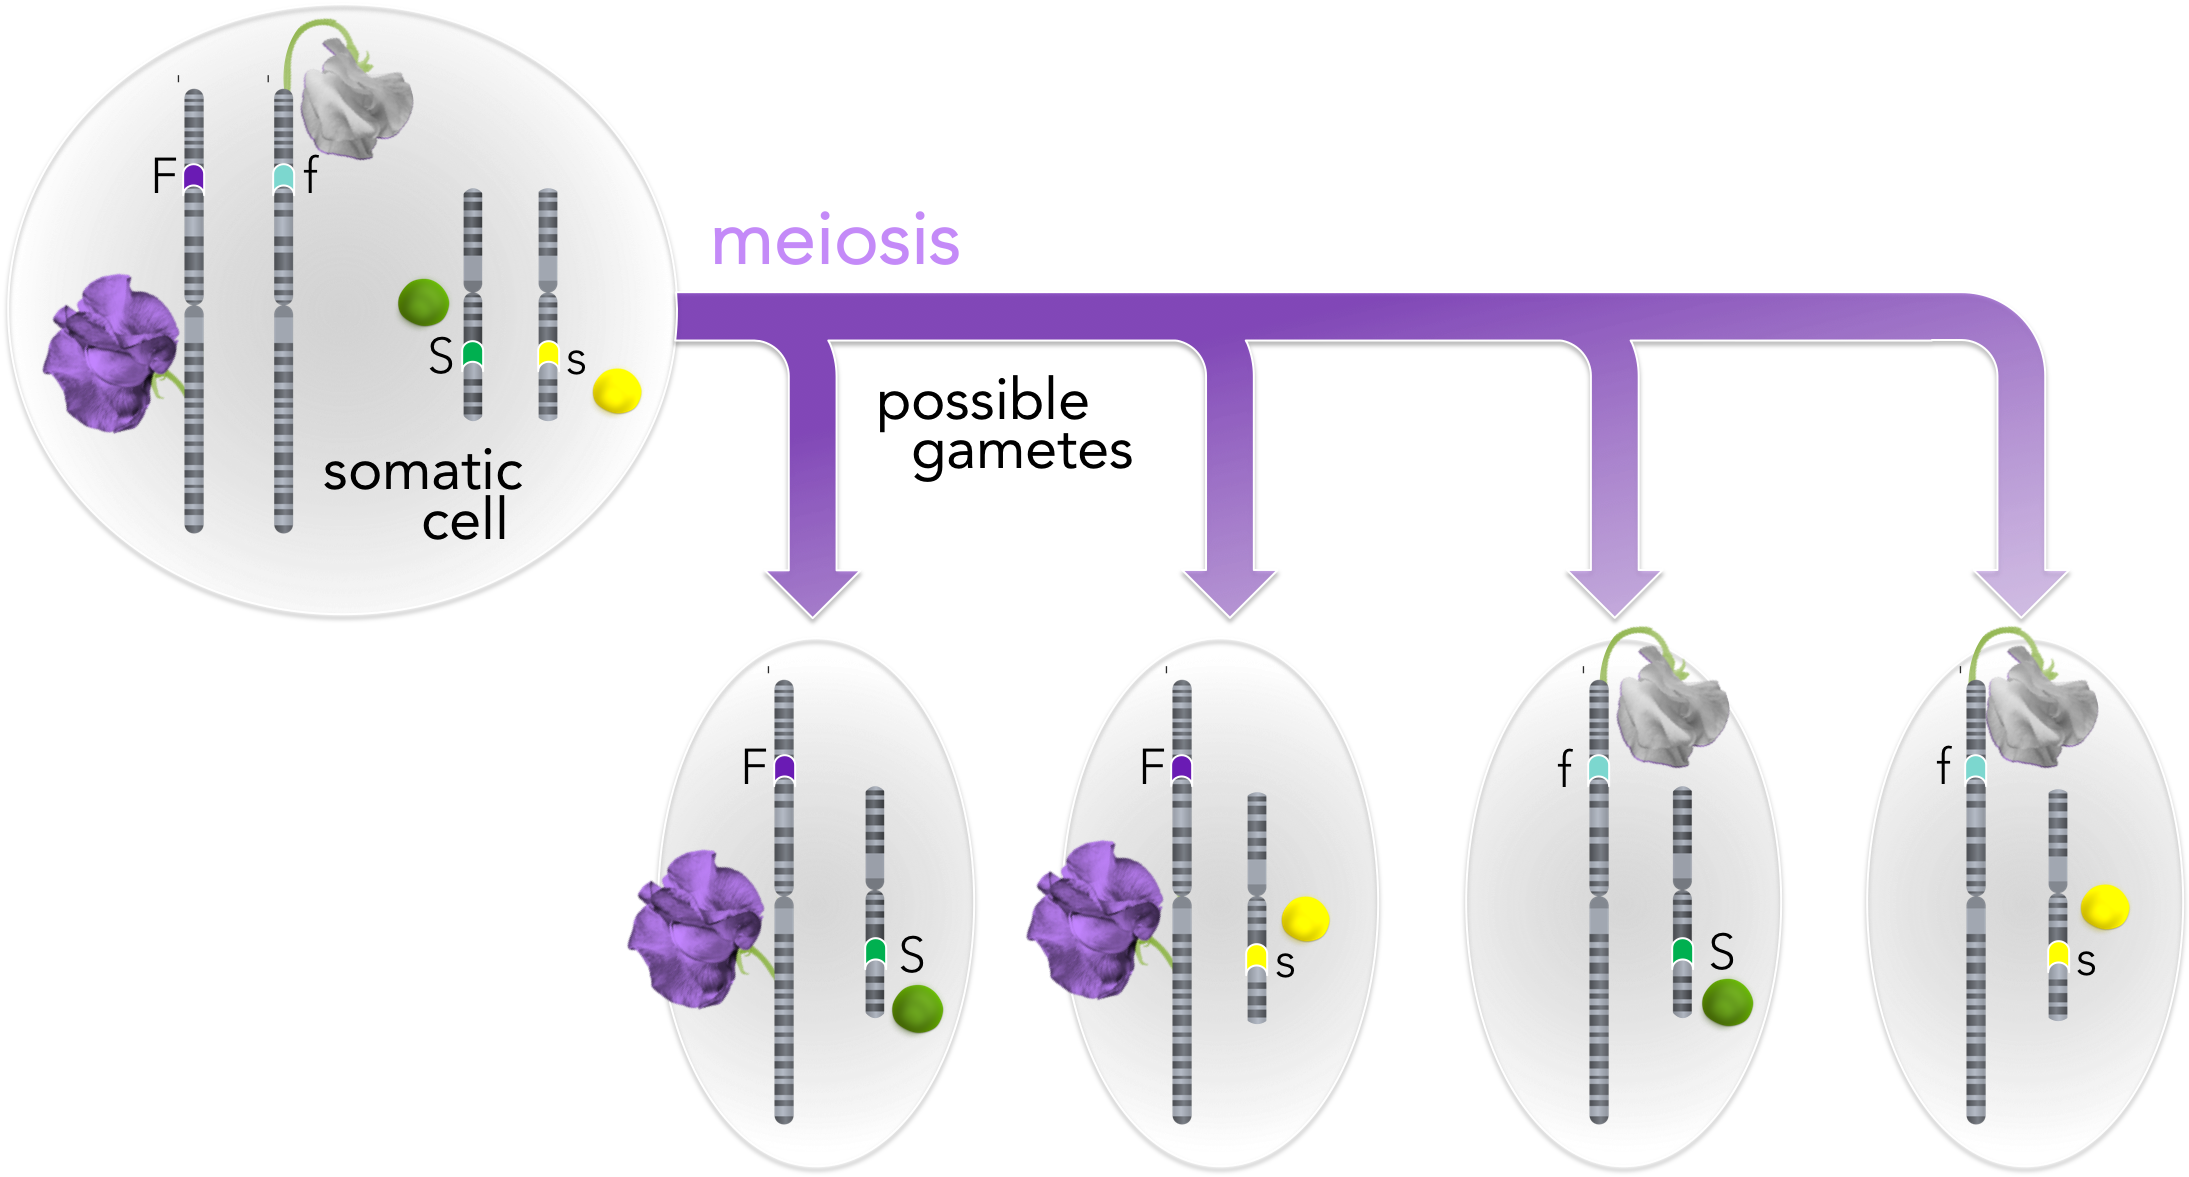 Figure 5.   Meiosis explains independent assortment.  If alleles are on different chromosomes, there is an equal probability of acquiring any allele combination in dihybrids (i.e. FfSs). This explains the 9:3:3:1 ratio discovered by Correns and Mendel.